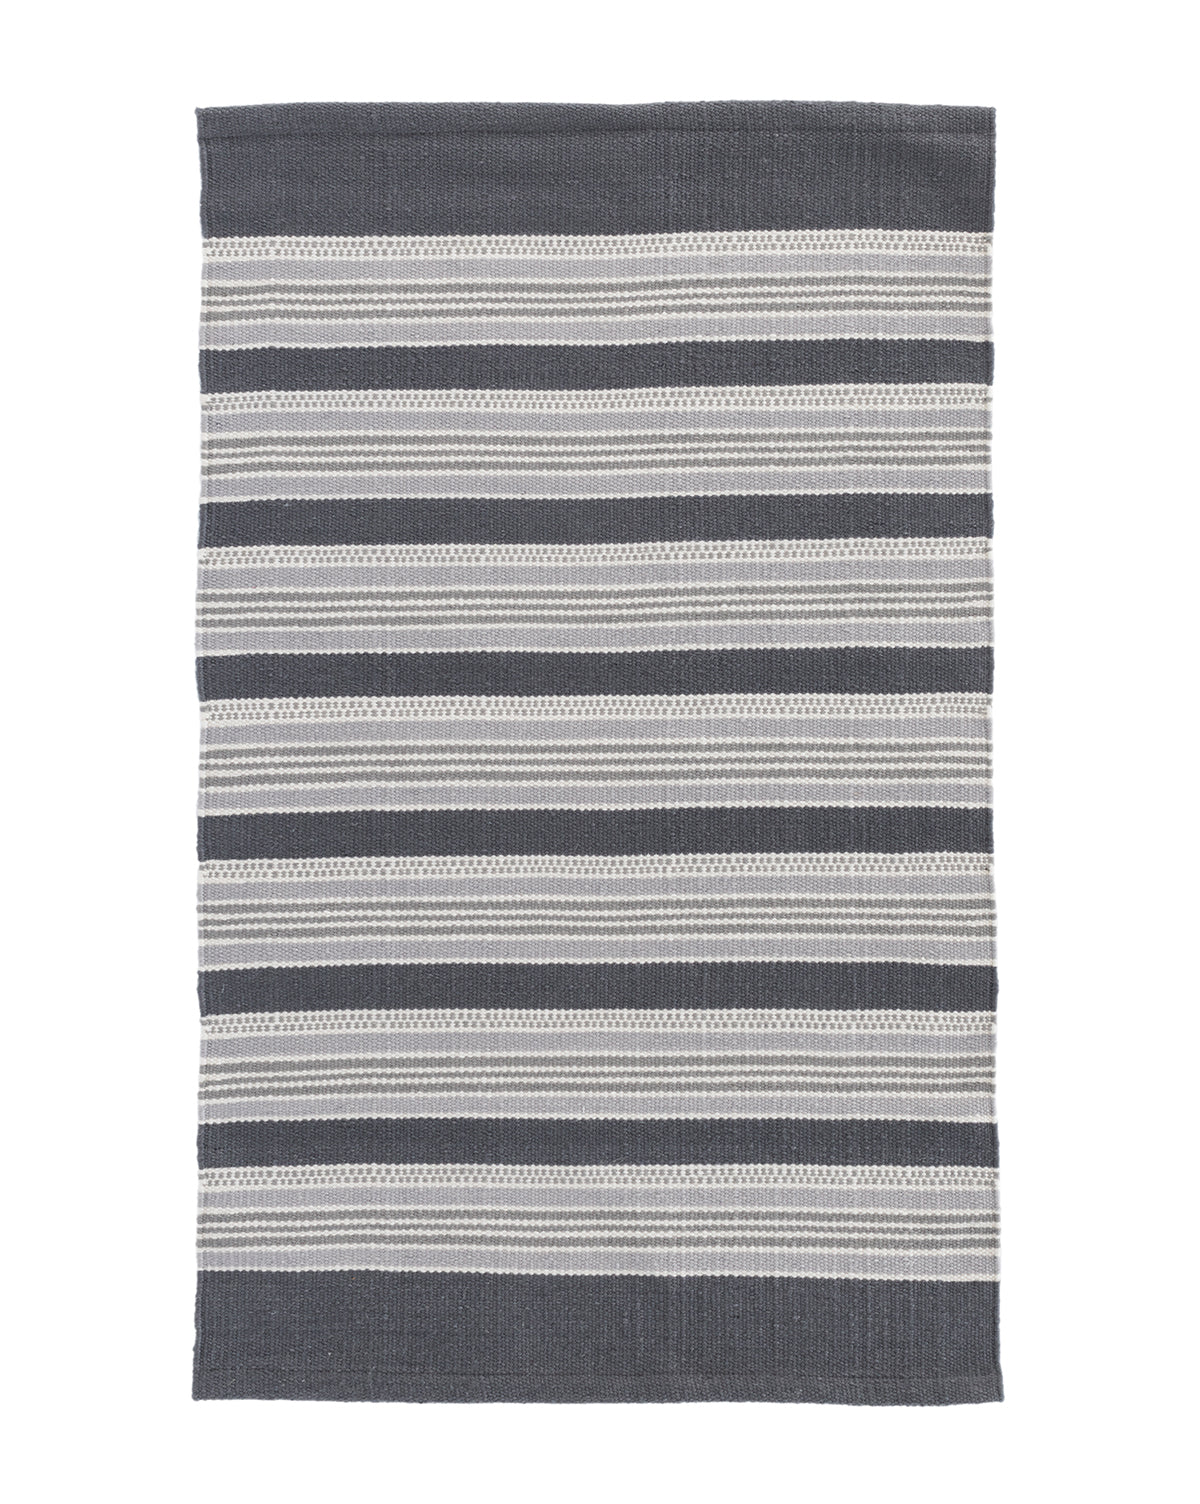 Akono Indoor Outdoor Rug Swatch Mcgee Co